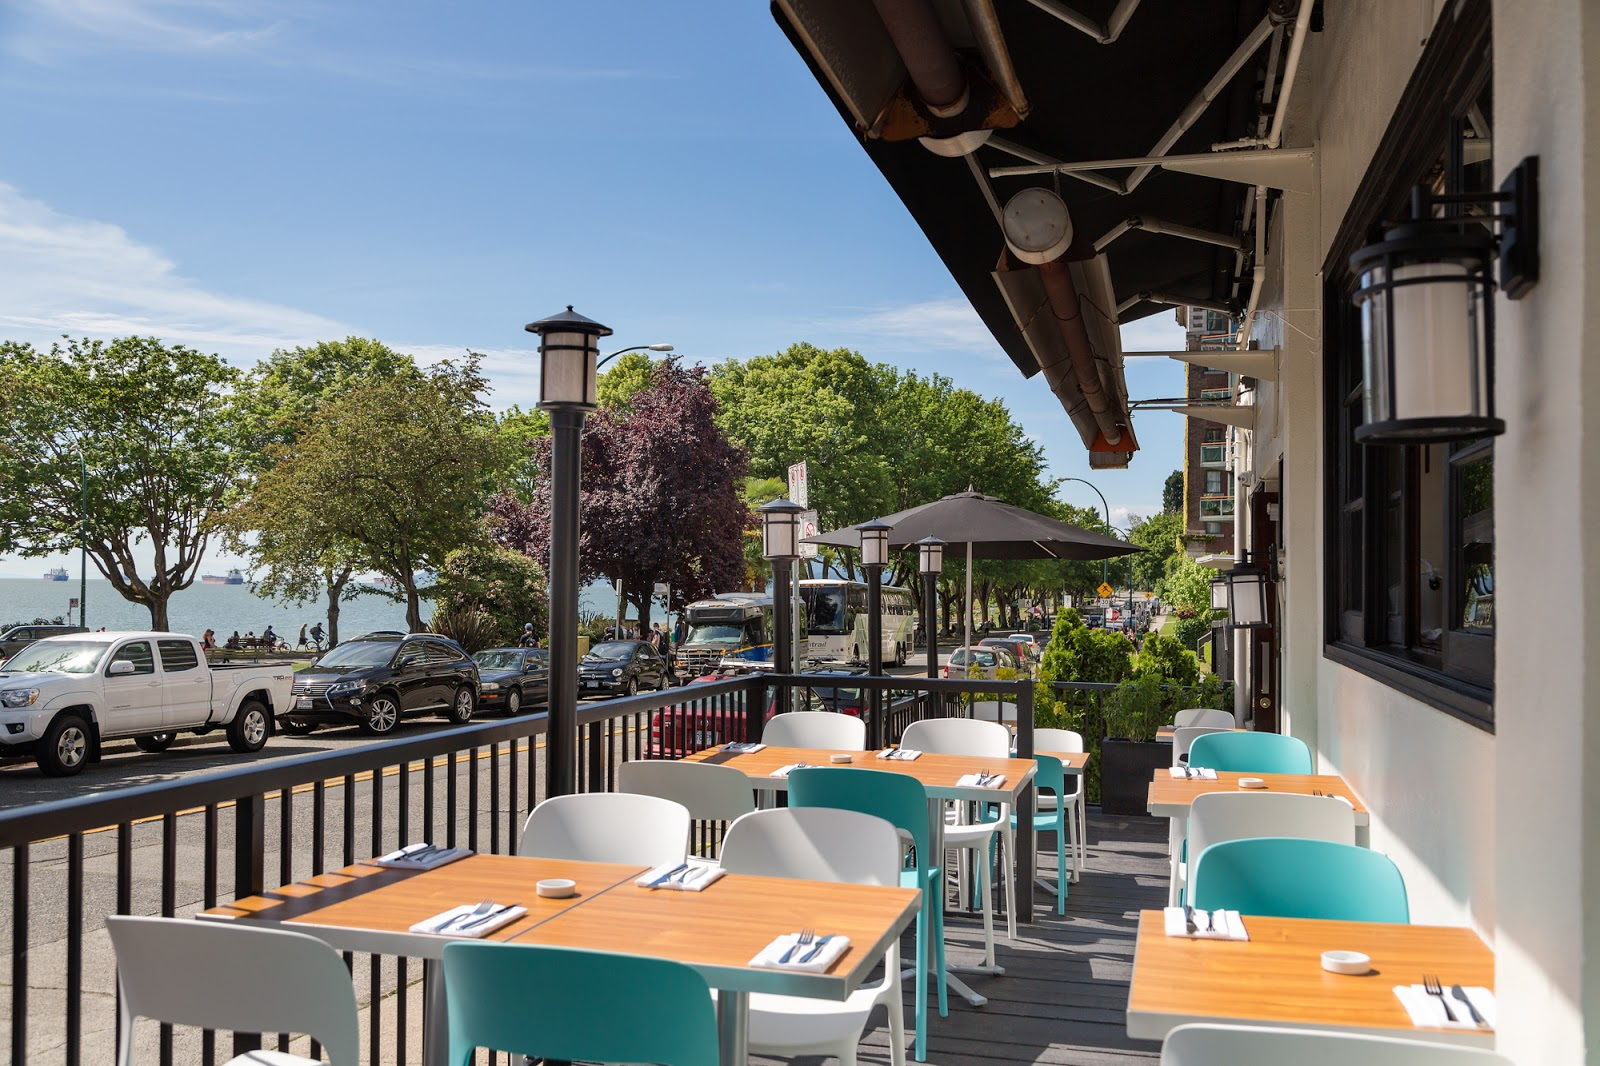 Vancouver S Raincity Grill Morphs Into The Sleek Beach Bay Cafe And Patio